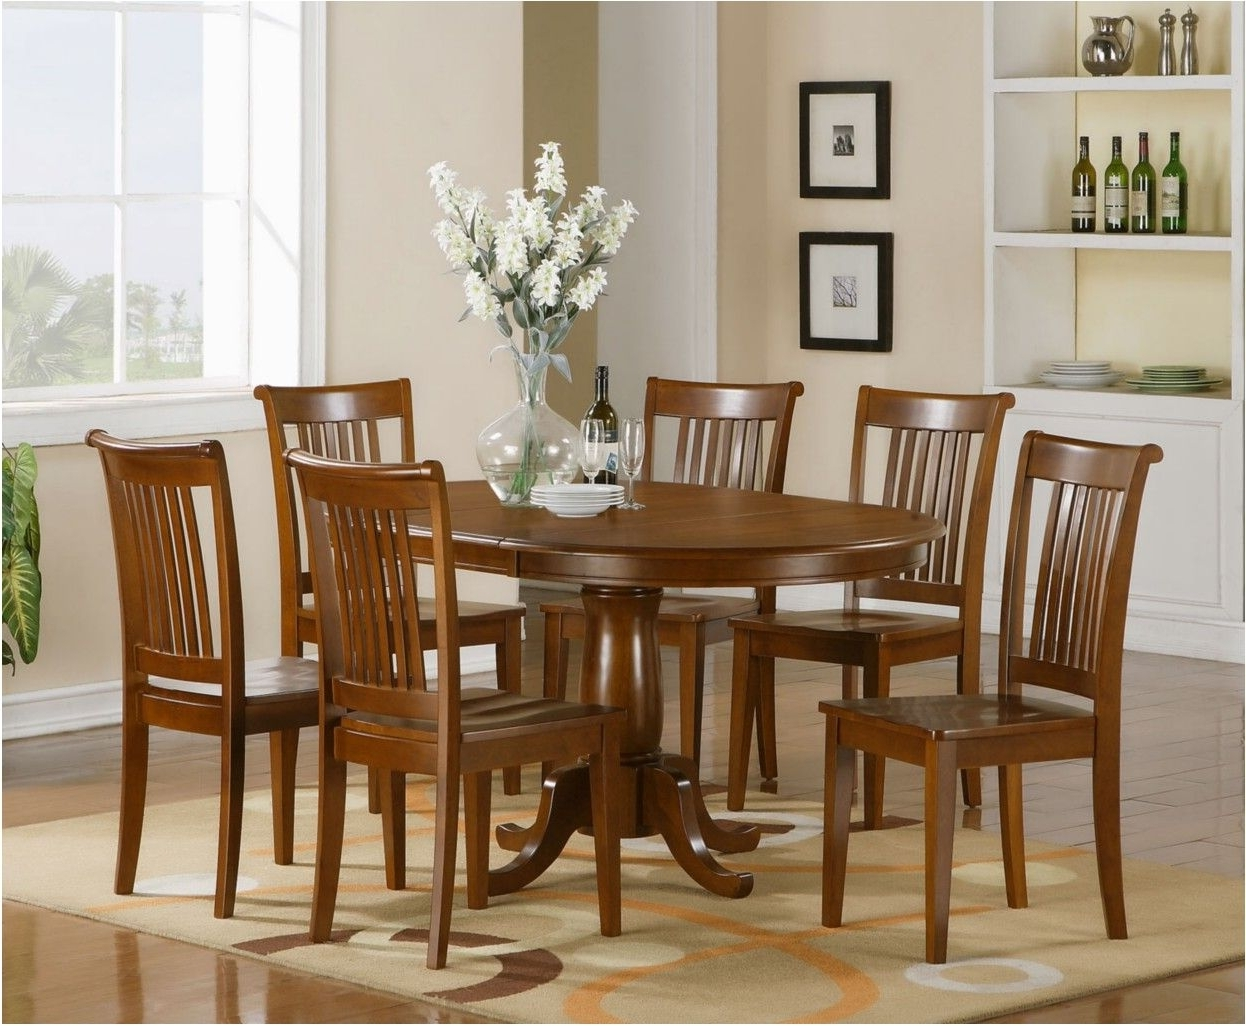 Best And Newest Excellently Dining Room Tables And Chairs Simple With Photo Of Round Intended For Dining Room Chairs (View 4 of 25)